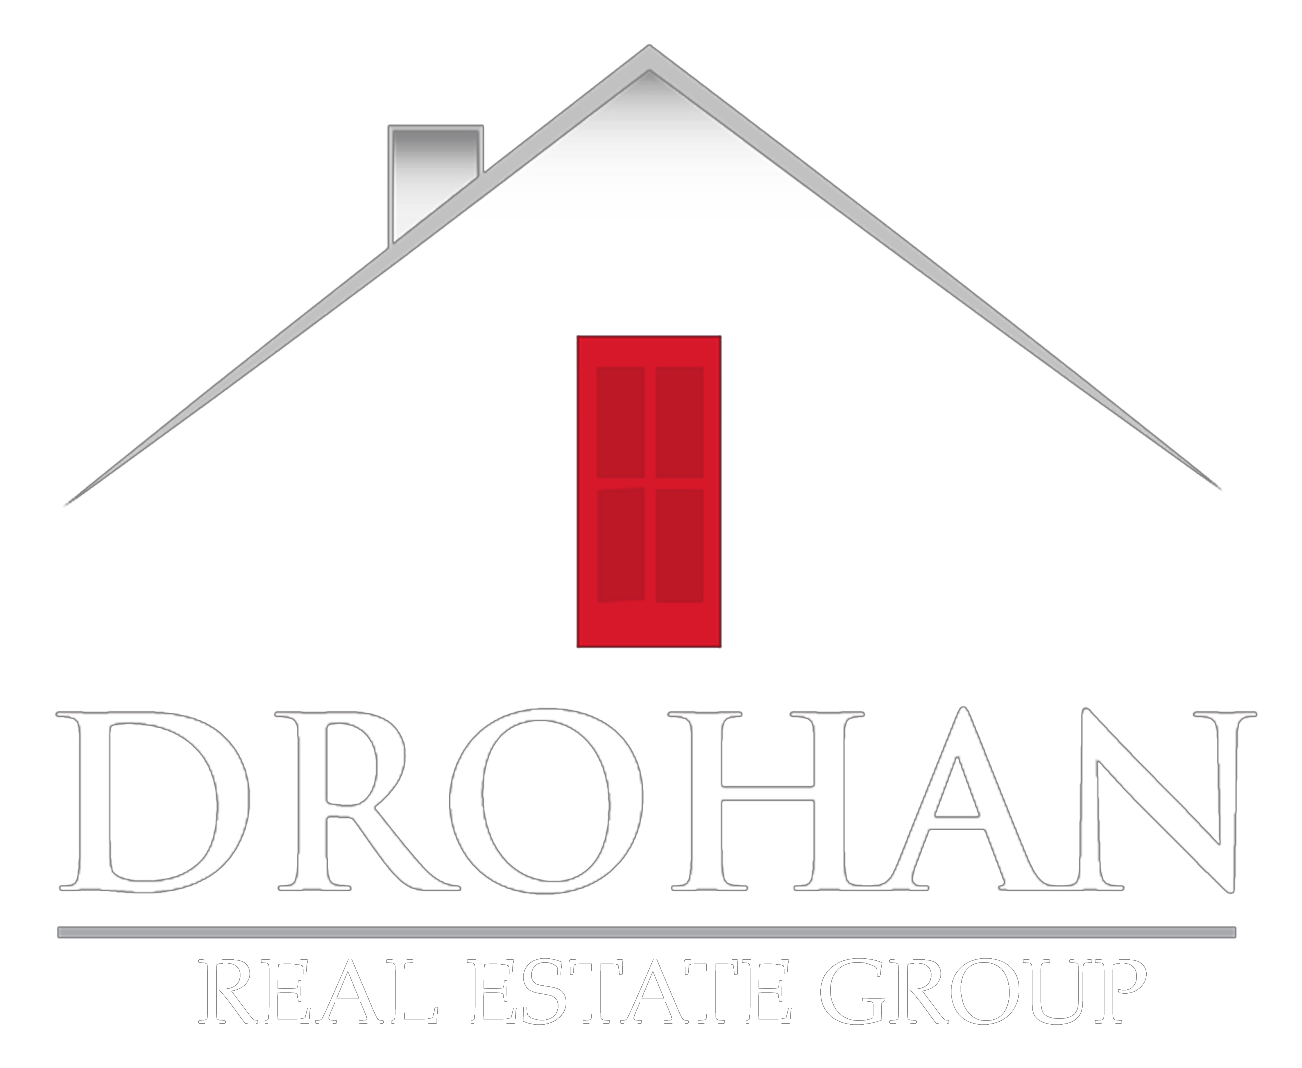 Searching for listings in Vaughan